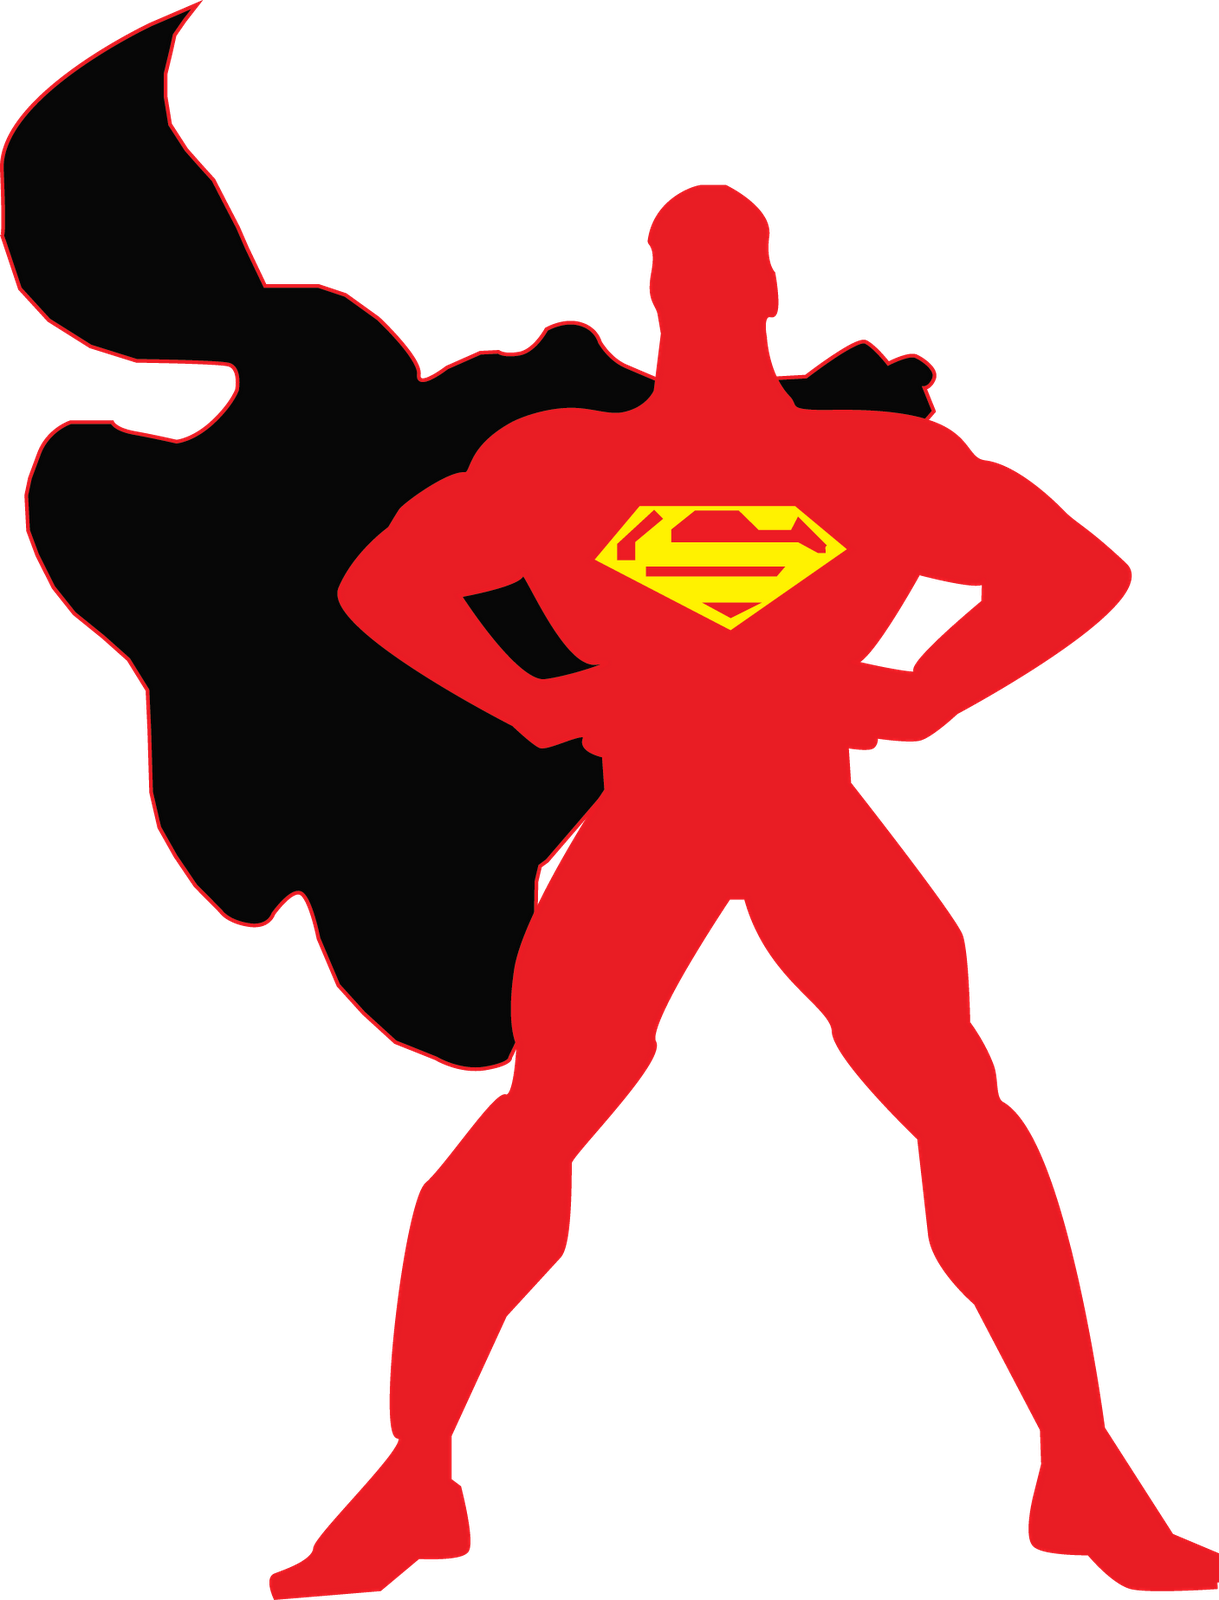 Apple outline with superman image clipart clip art royalty free stock Superman Clipart | jokingart.com Superman Clipart clip art royalty free stock